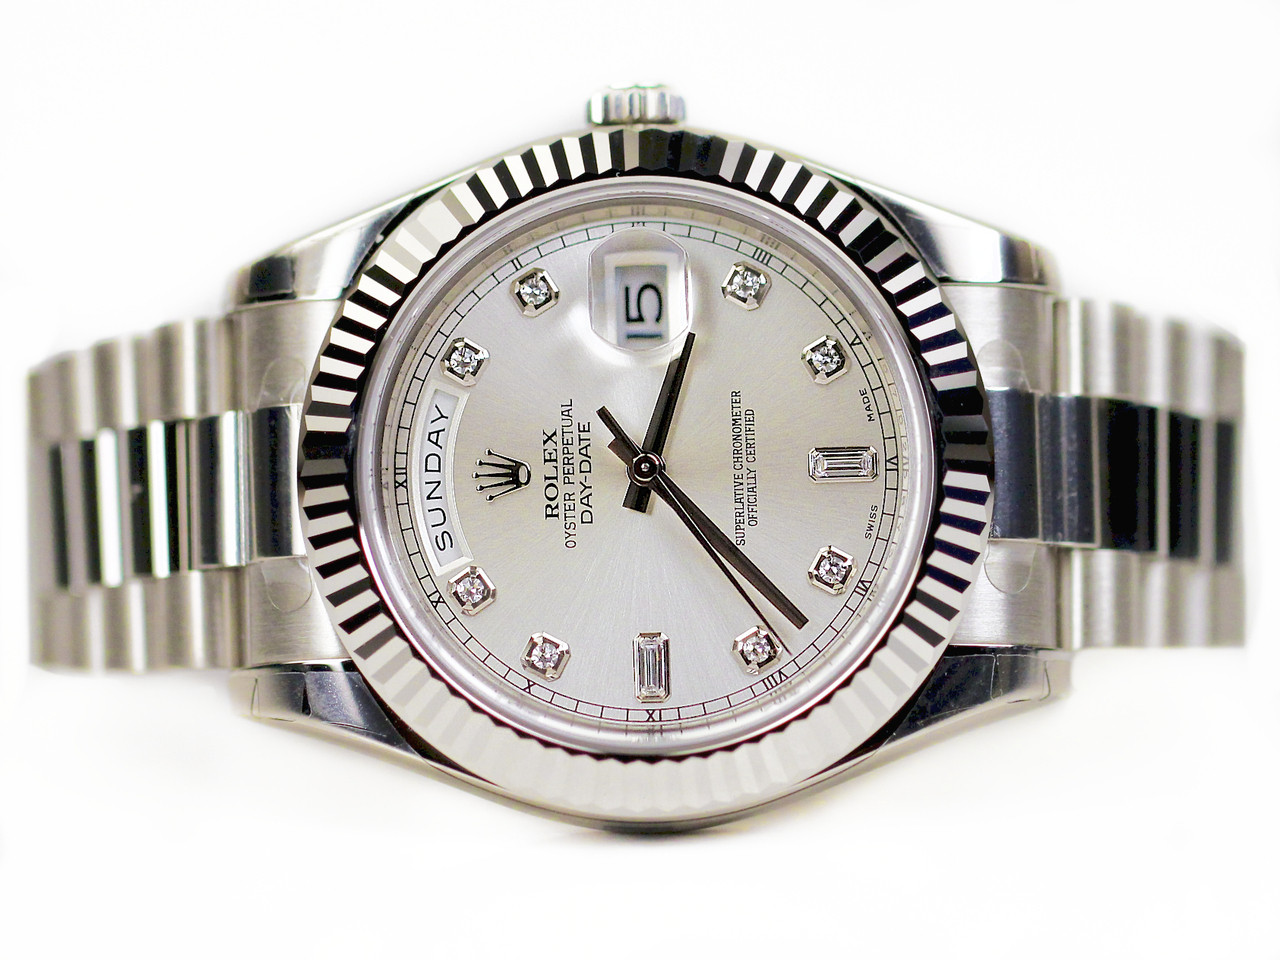 Rolexs Watches Rolex Oyster Perpetual Watch Day Date Ii White Gold